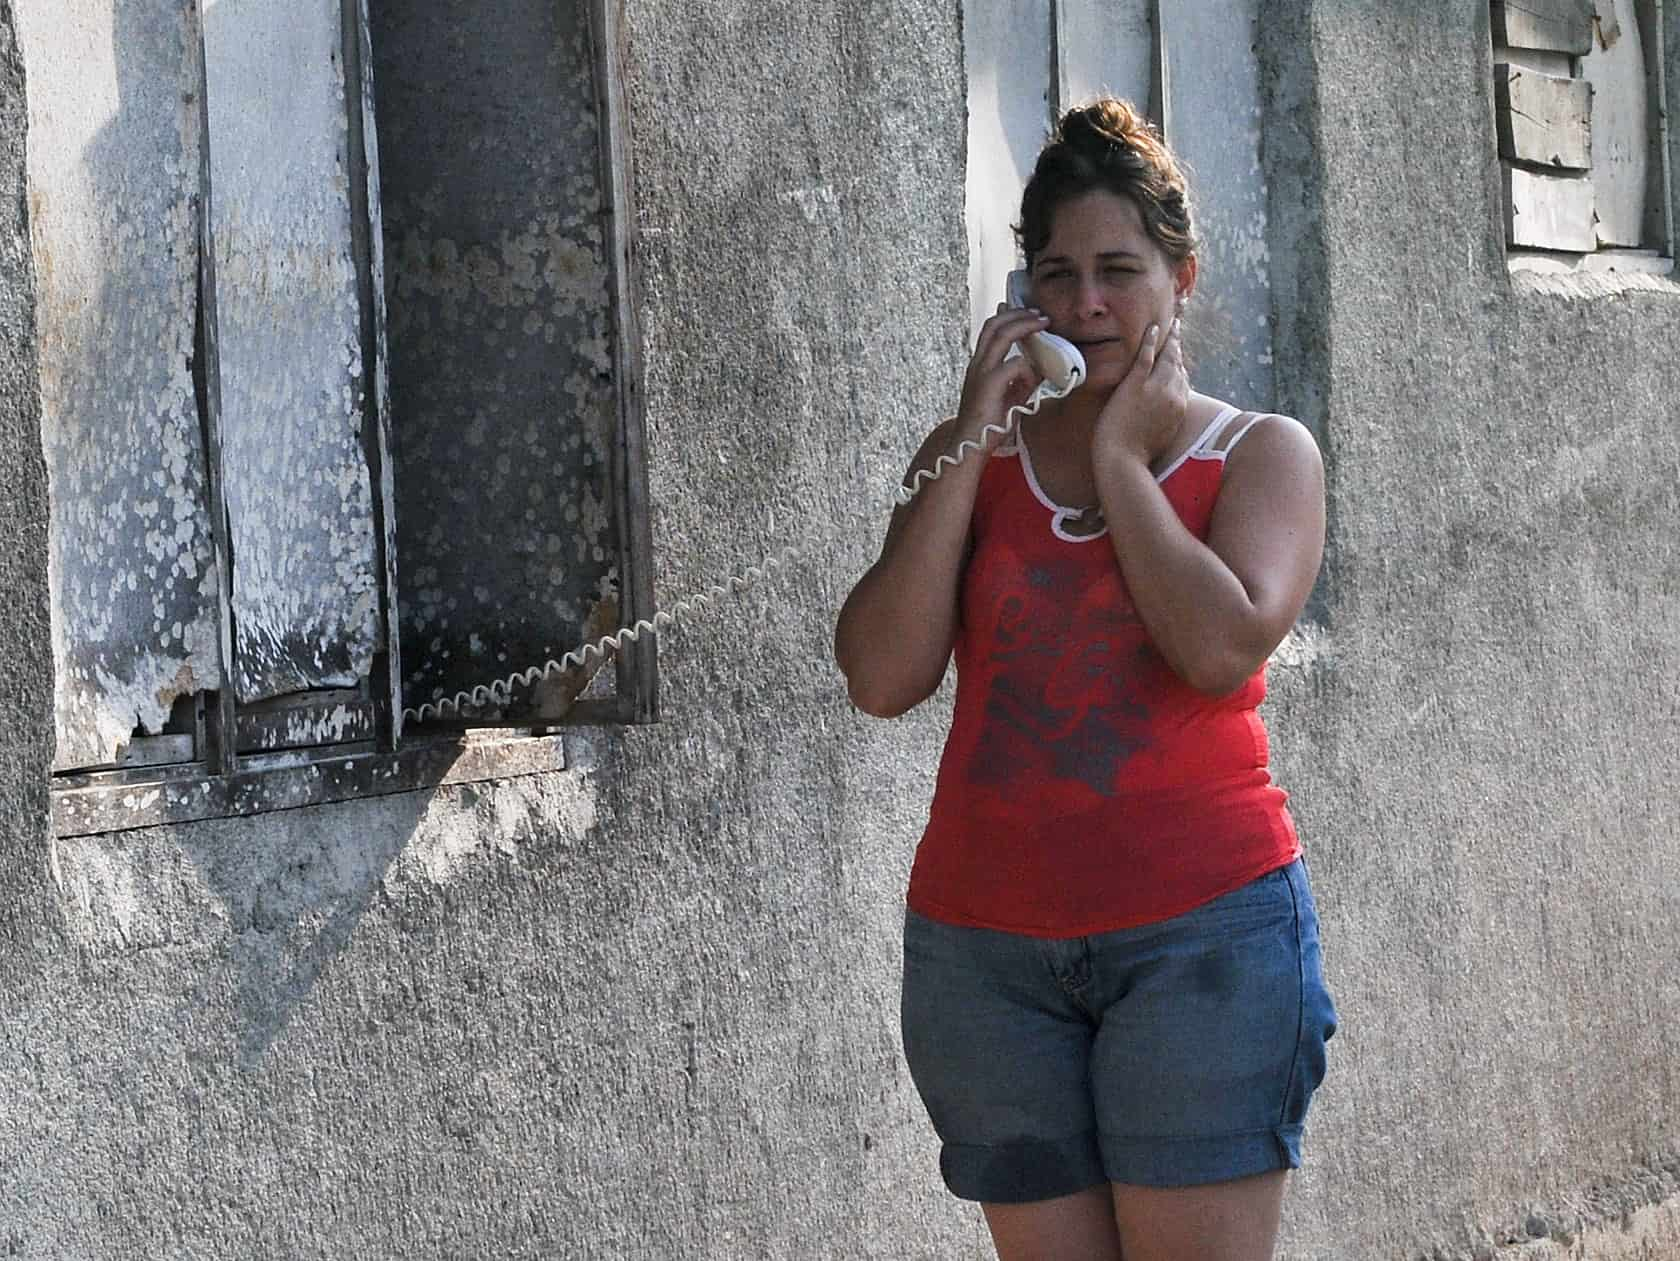 A Cuban woman talks on the phone on a Havana street.